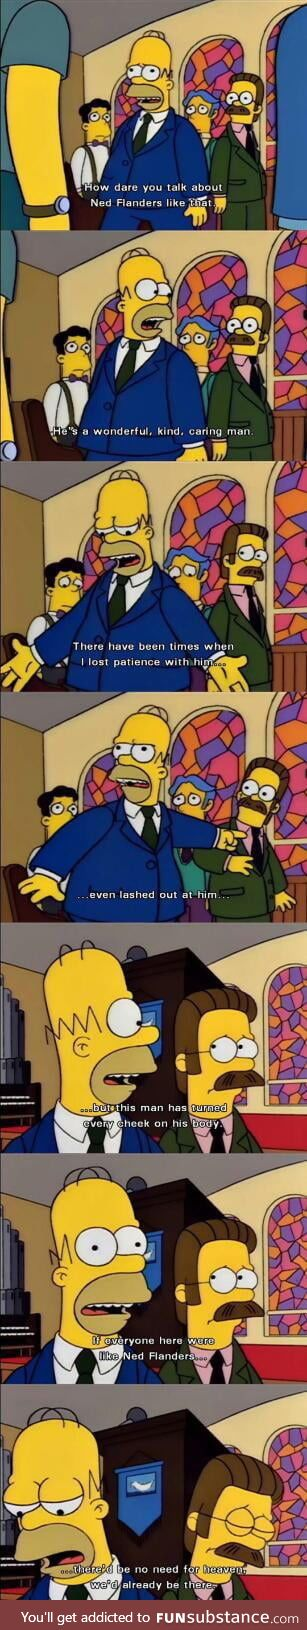 Wholesome simpsons (:-